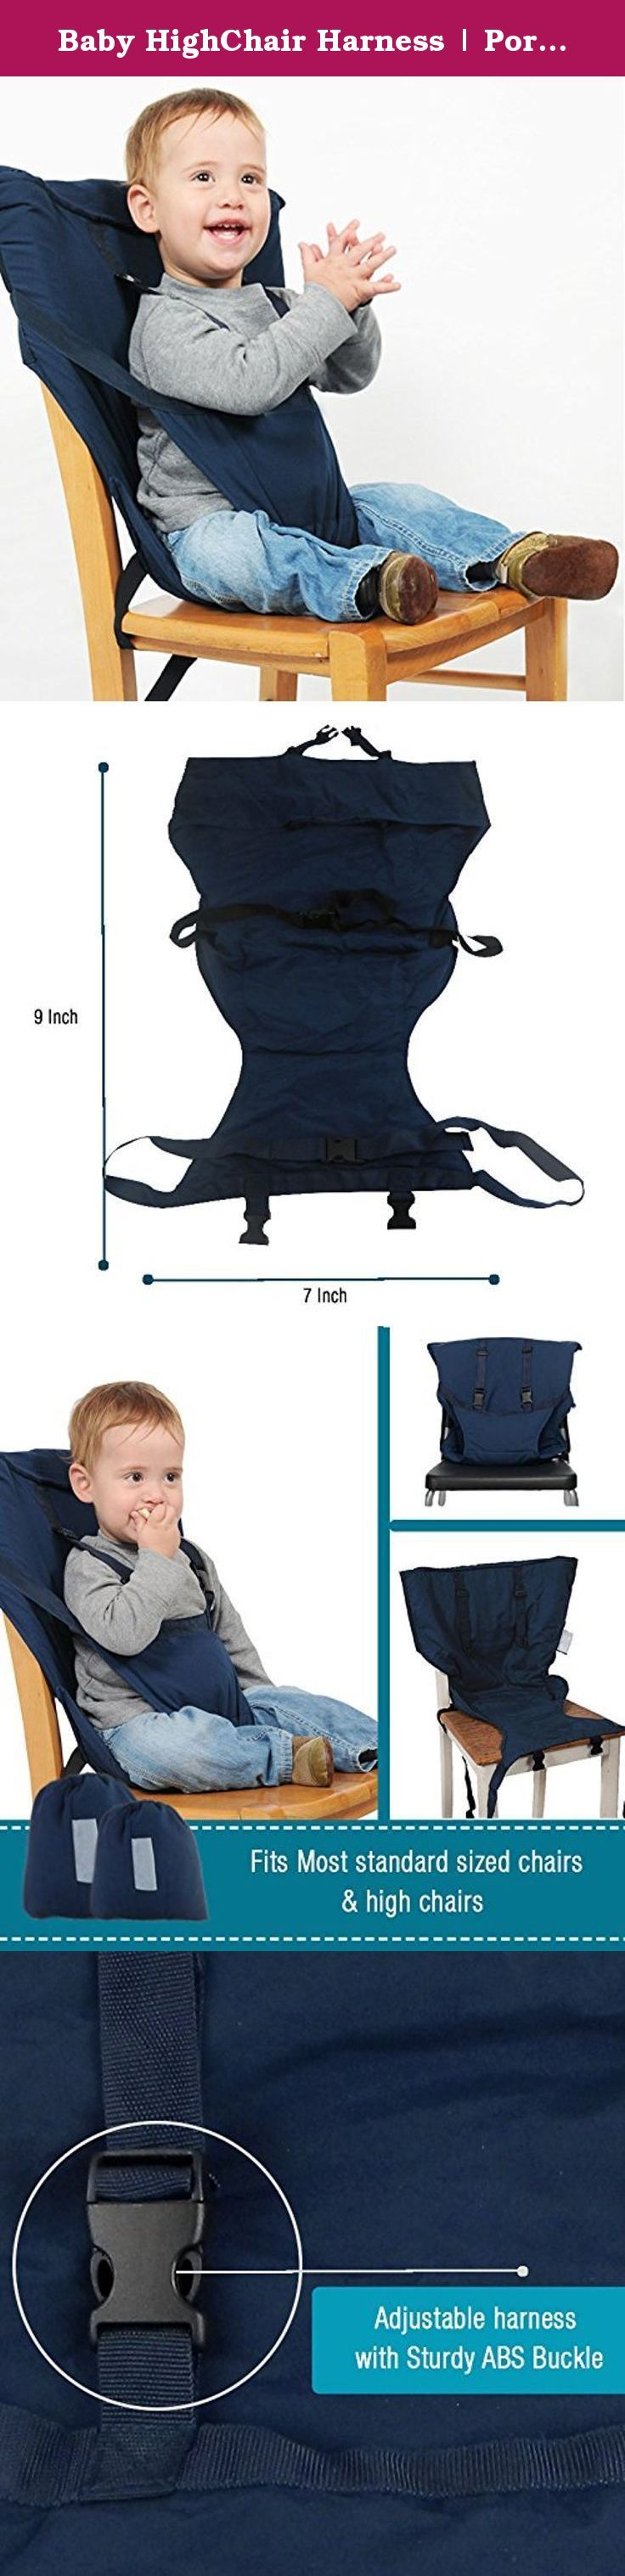 Baby HighChair Harness | Portable Travel Safety Belt Booster Feeding High Chair Seat Cover Sack Cushion Bag for Baby Kid Toddler | Secure with Adjustable Straps | Include Hand Wash Cloth | Dark Blue. Baby HighChair Harness (TM) Turn Every Chair into Baby Chair Are you tired of bulky and space consuming highchairs that are blatantly inconvenient? Or do you care more about your baby's comfort on feeding time? We have the solution for you! Introducing Baby HighChair Harness (TM)…